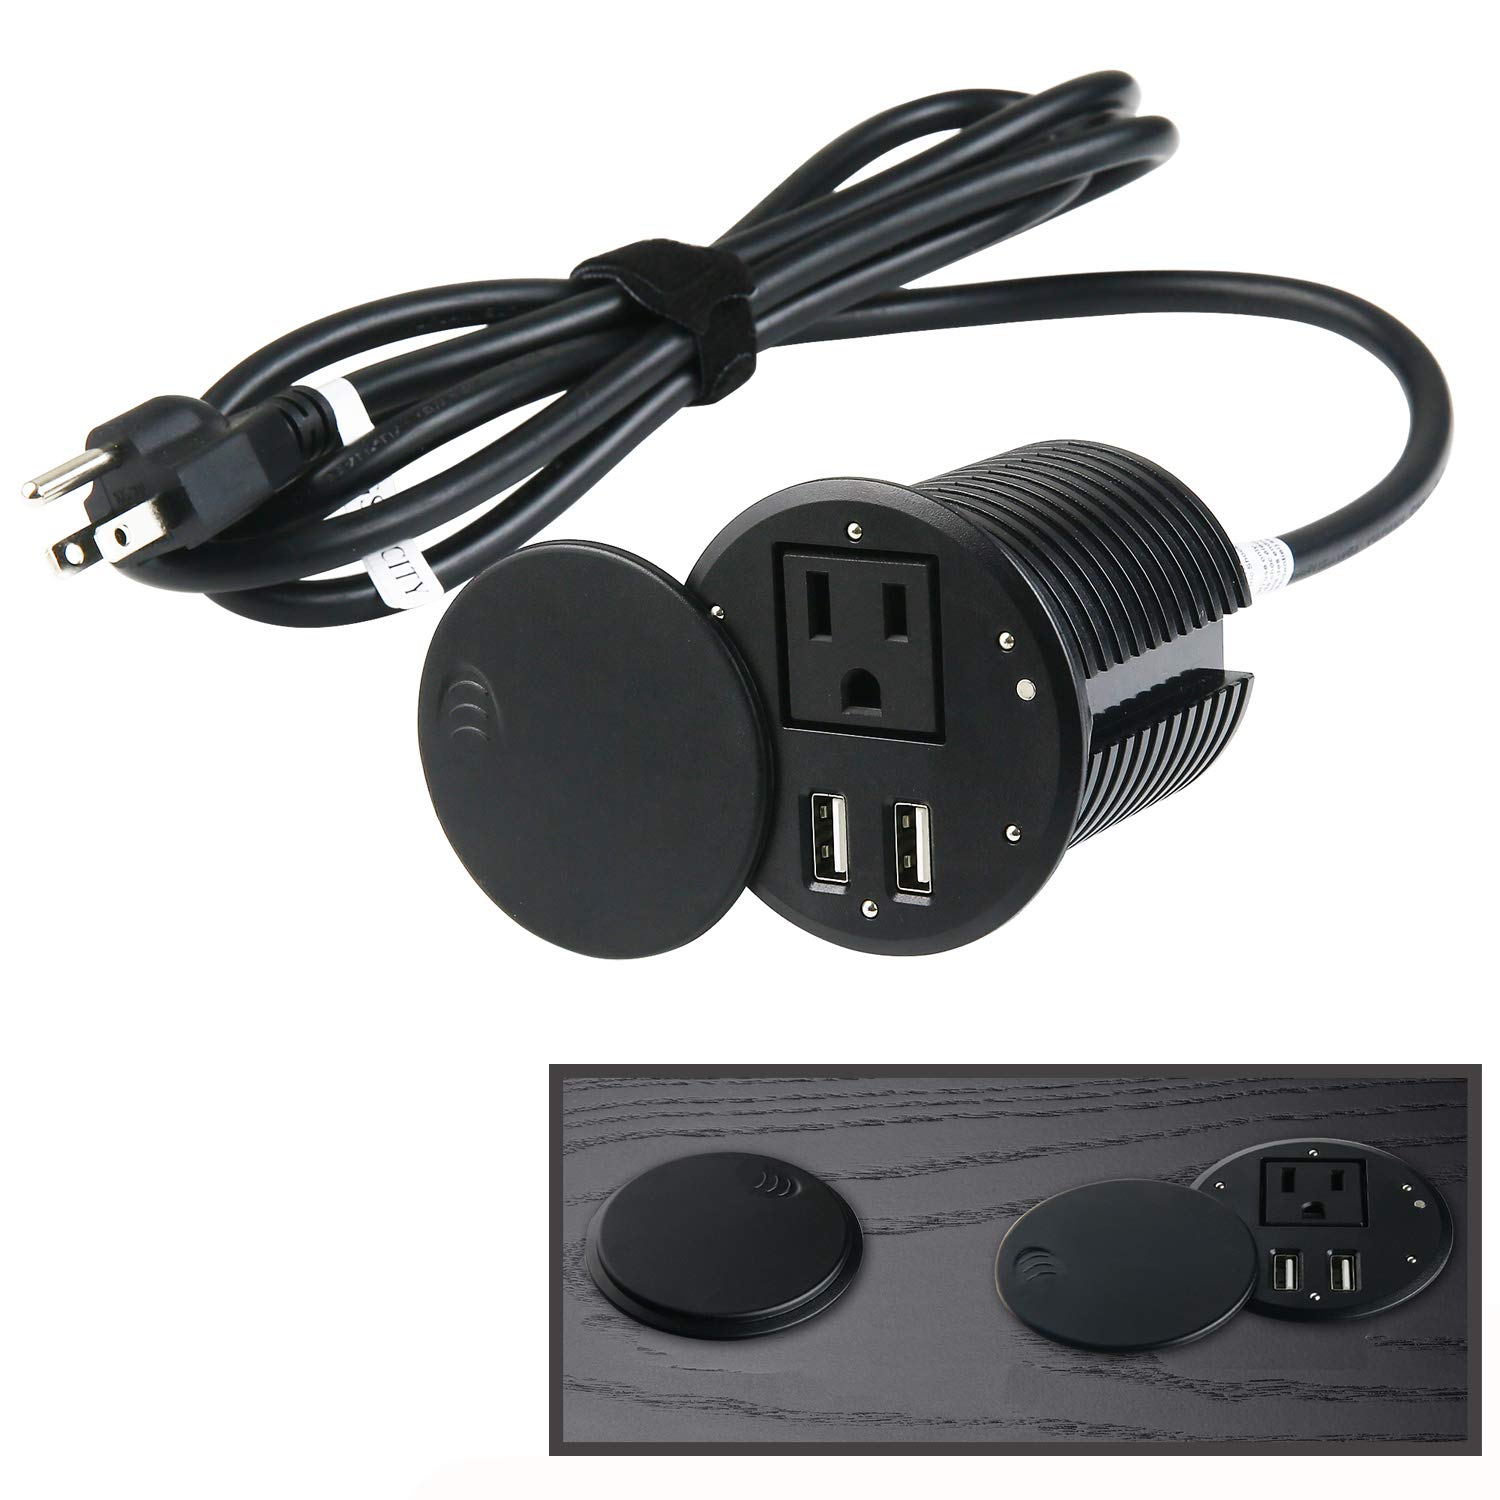 Desktop Power Grommet with Swing Open Cover. Desk Grommet Outlet 2.35inch Hole,Power Grommet with USB, Easy Access to 1 Power Source Along with 2 USB Power Port Connections